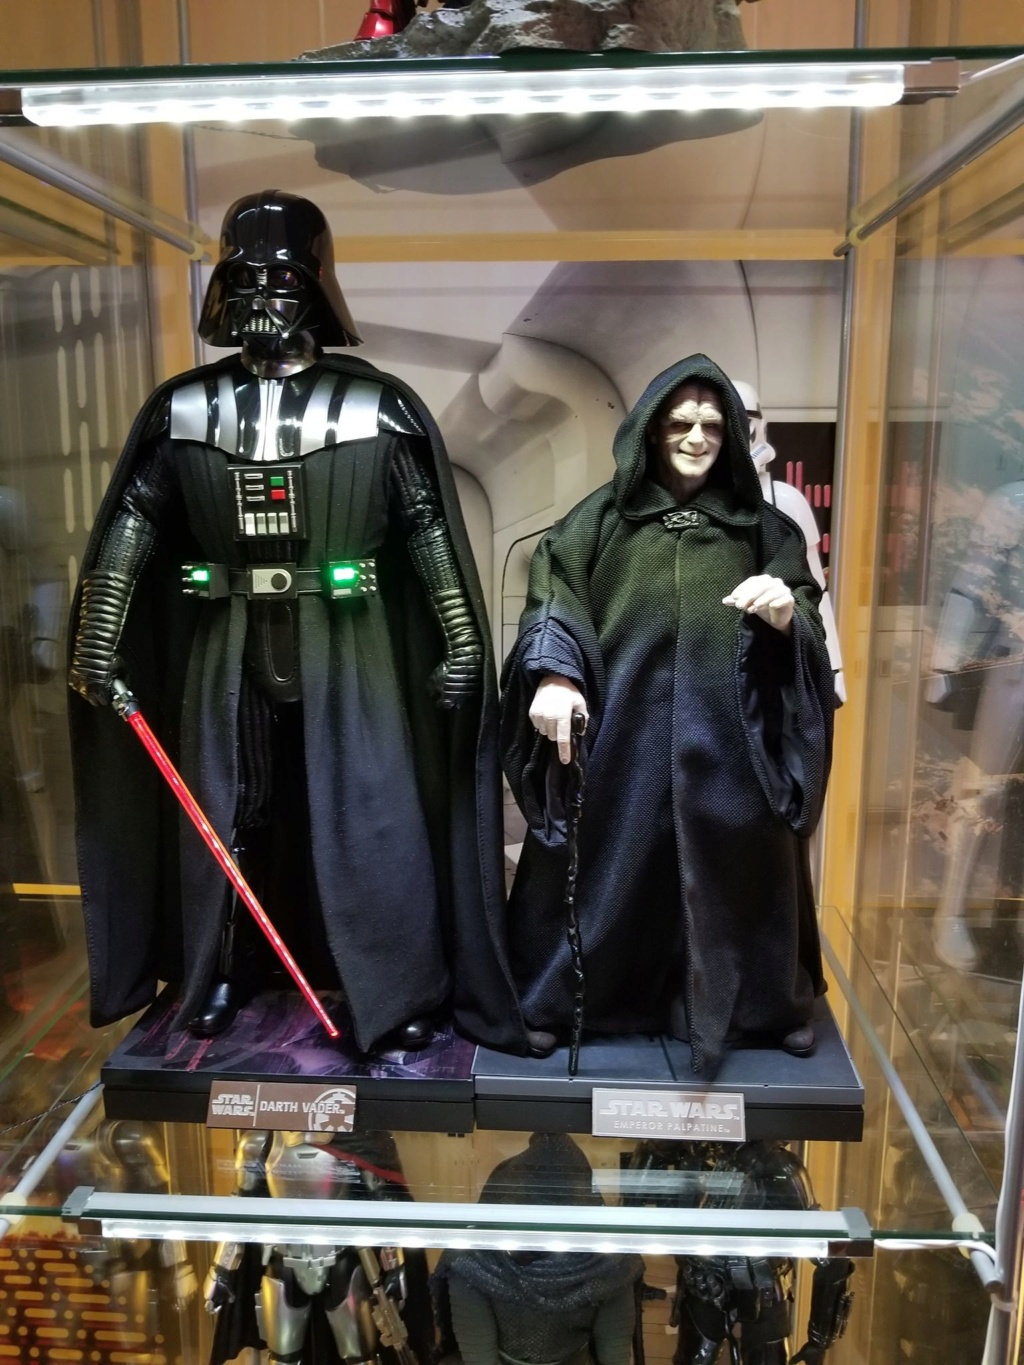 rotj - Hot Toys Star Wars Emperor Palpatine (Deluxe) Review - Page 2 48419210